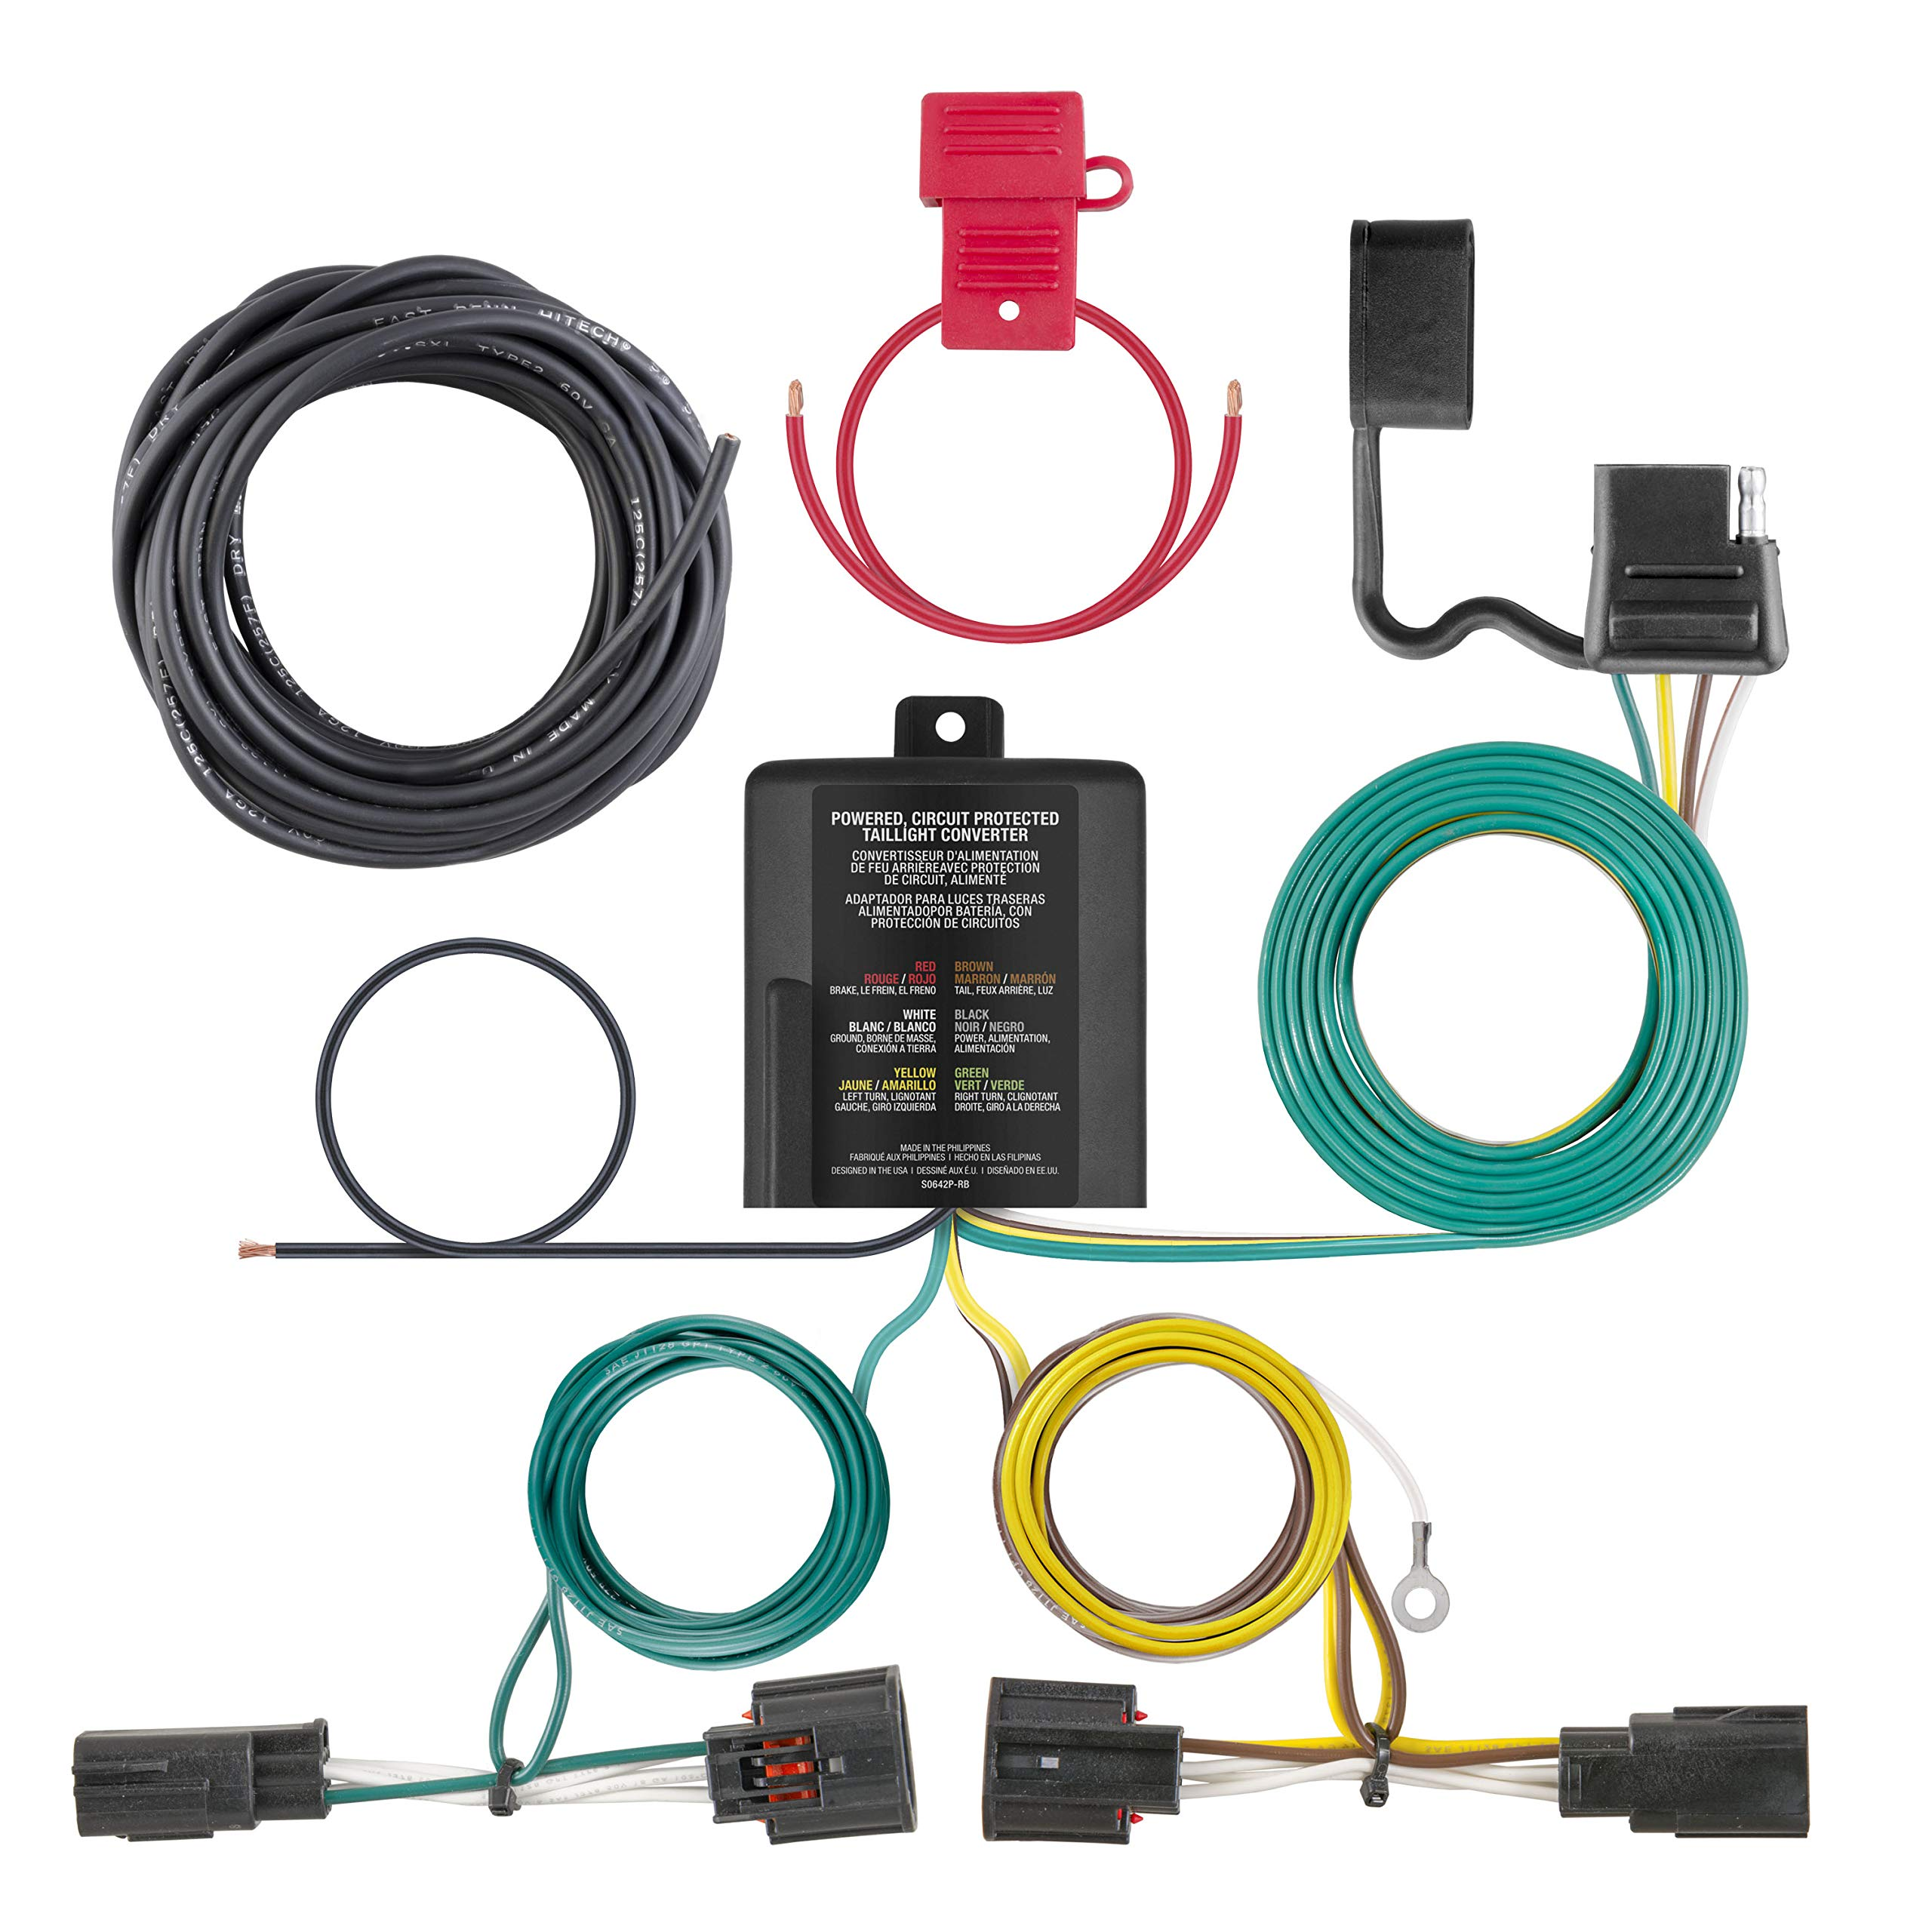 CURT 56331 Vehicle-Side Custom 4-Pin Trailer Wiring Harness for Select Chrysler Town and Country, Dodge Caravan, Grand Caravan by CURT (Image #2)